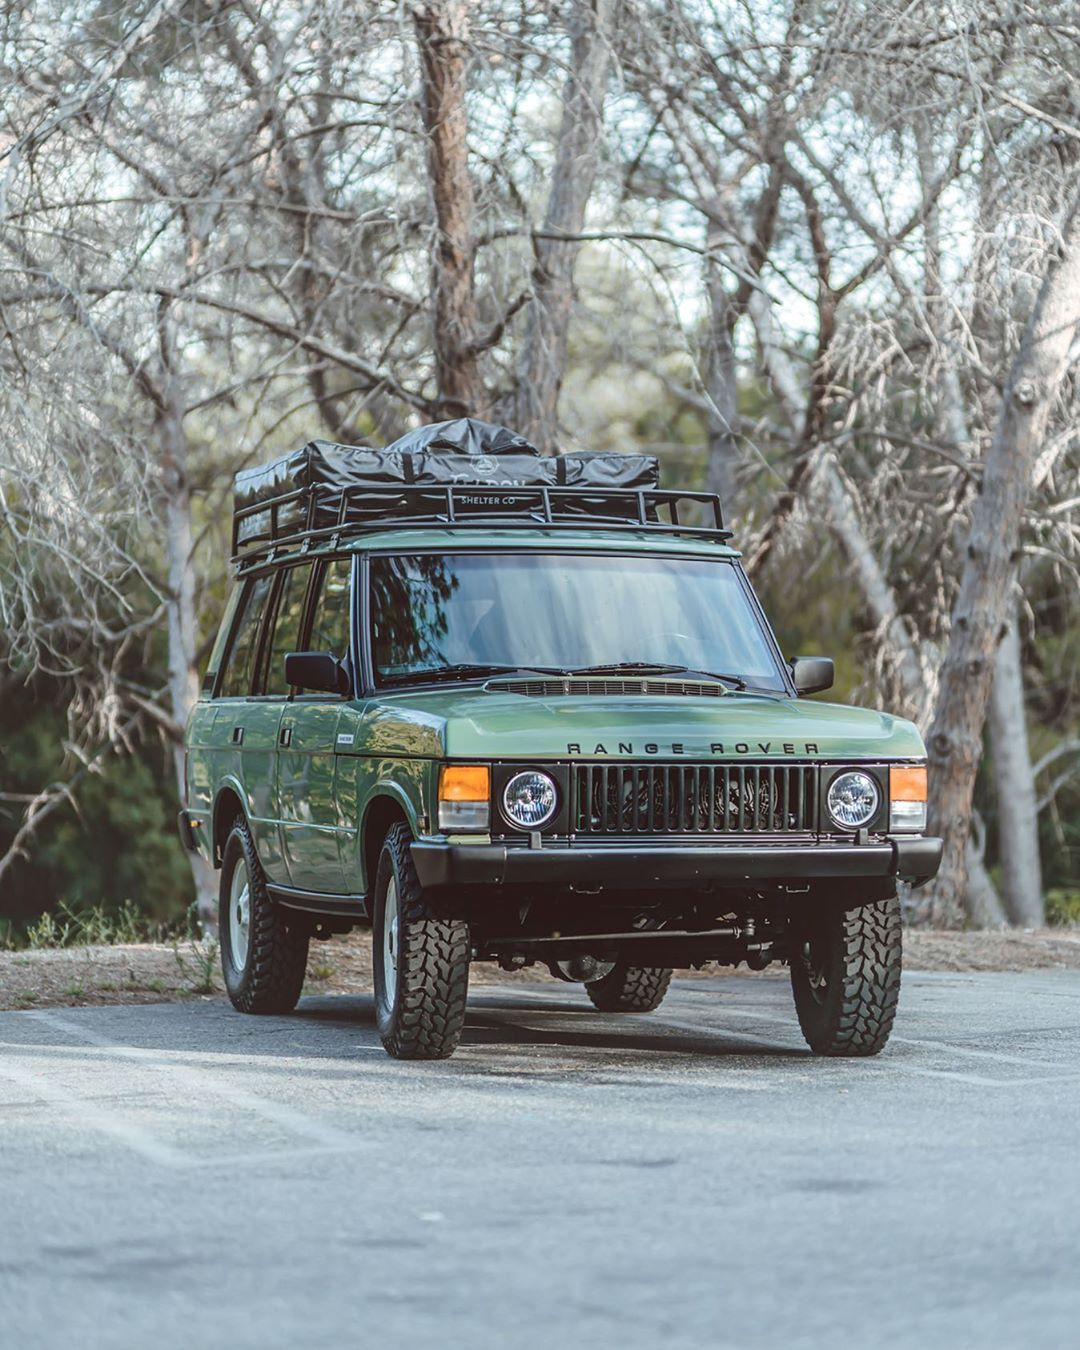 Brooklyn Coachworks On Instagram We Are Commemorating Range Rover S 50th Anniversary With These Special Heritage B Range Rover Classic Range Rover Land Rover